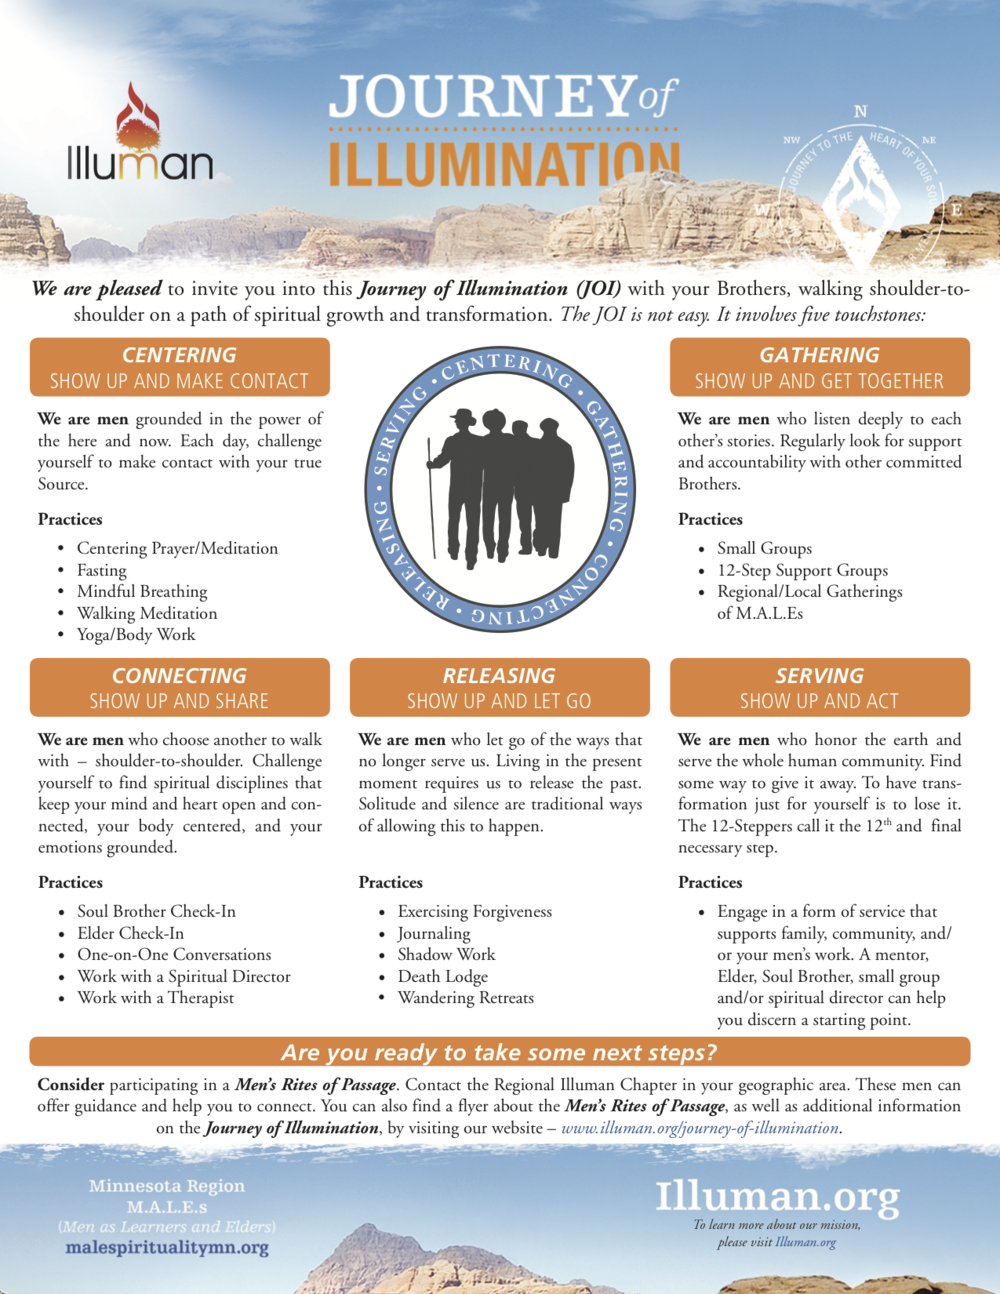 Journey of Illumination Flier